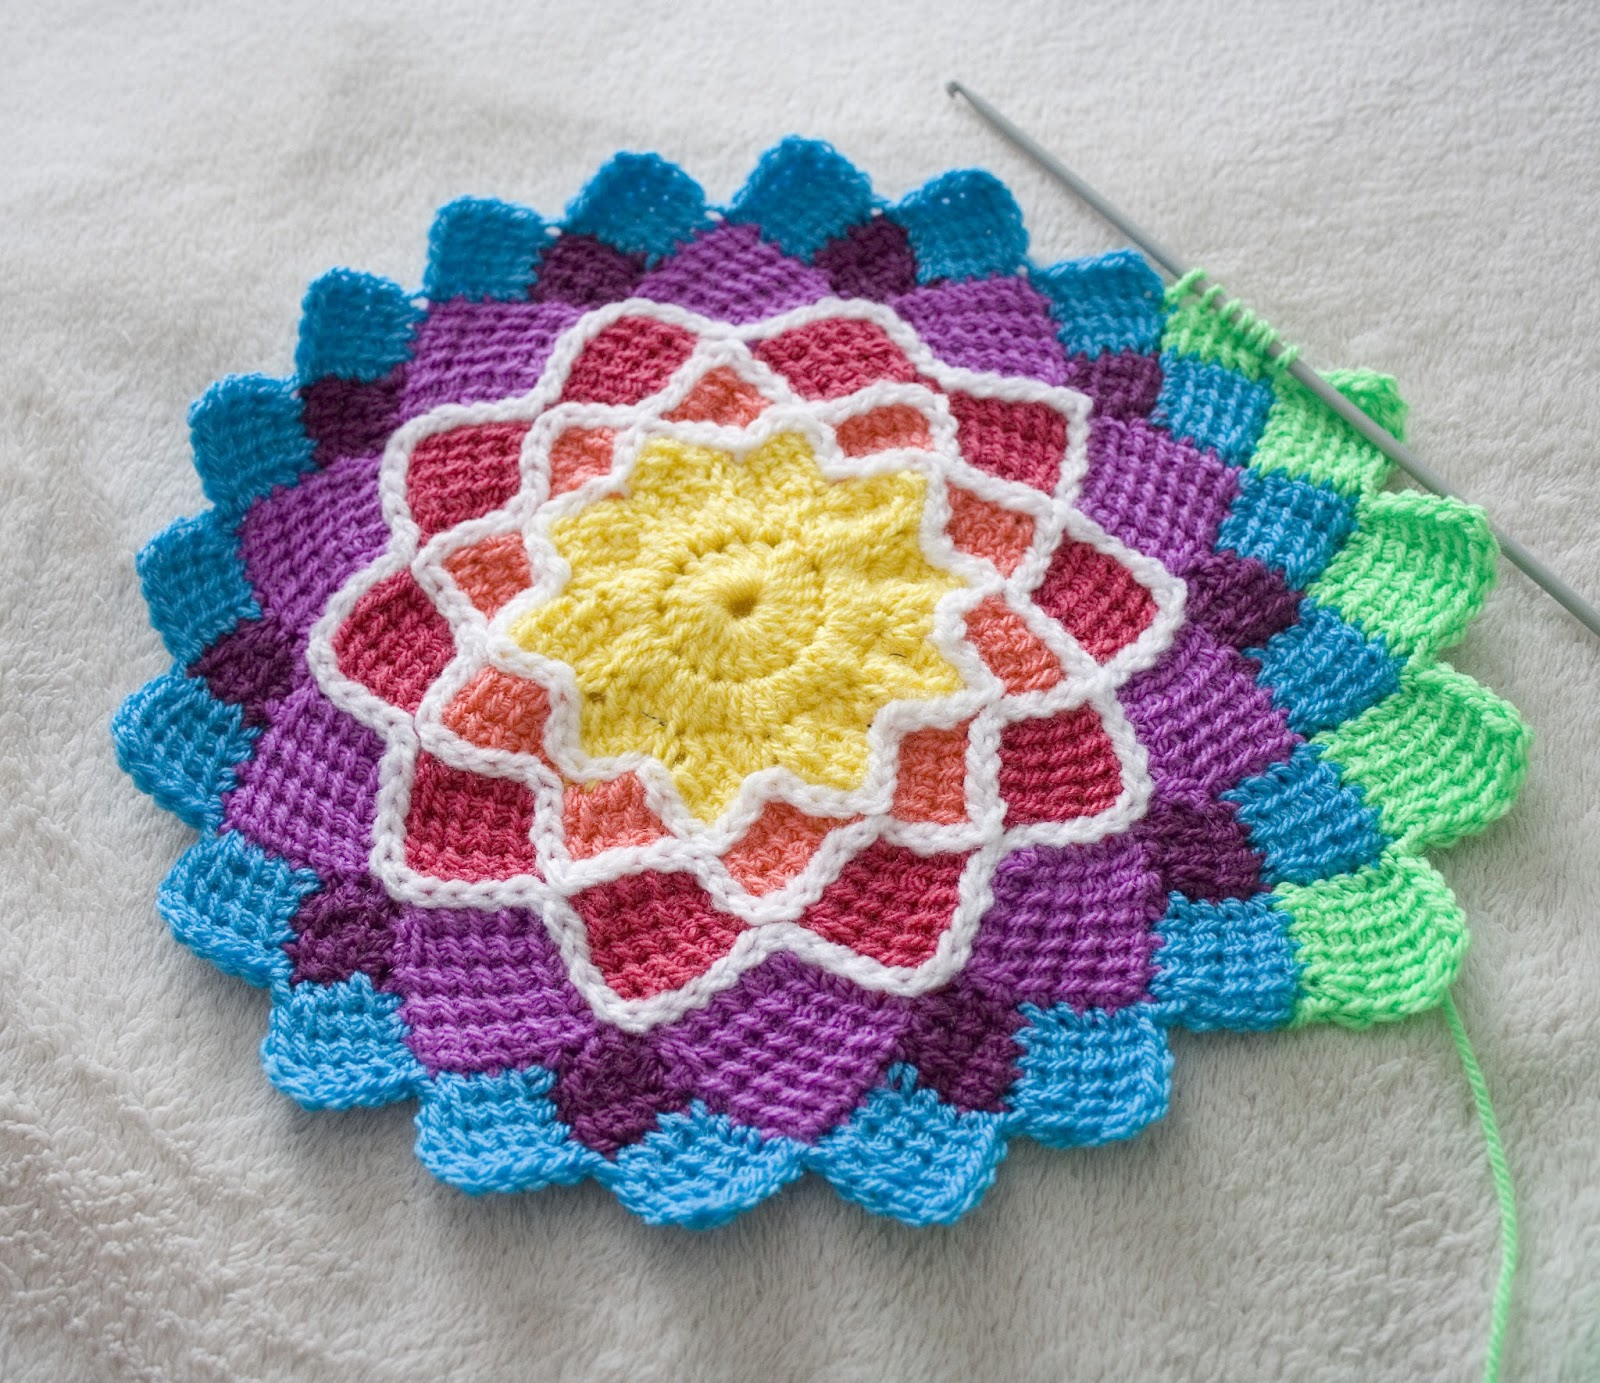 Crochet Patterns In The Round : Hazels Crochet: Sunny Daze Flower